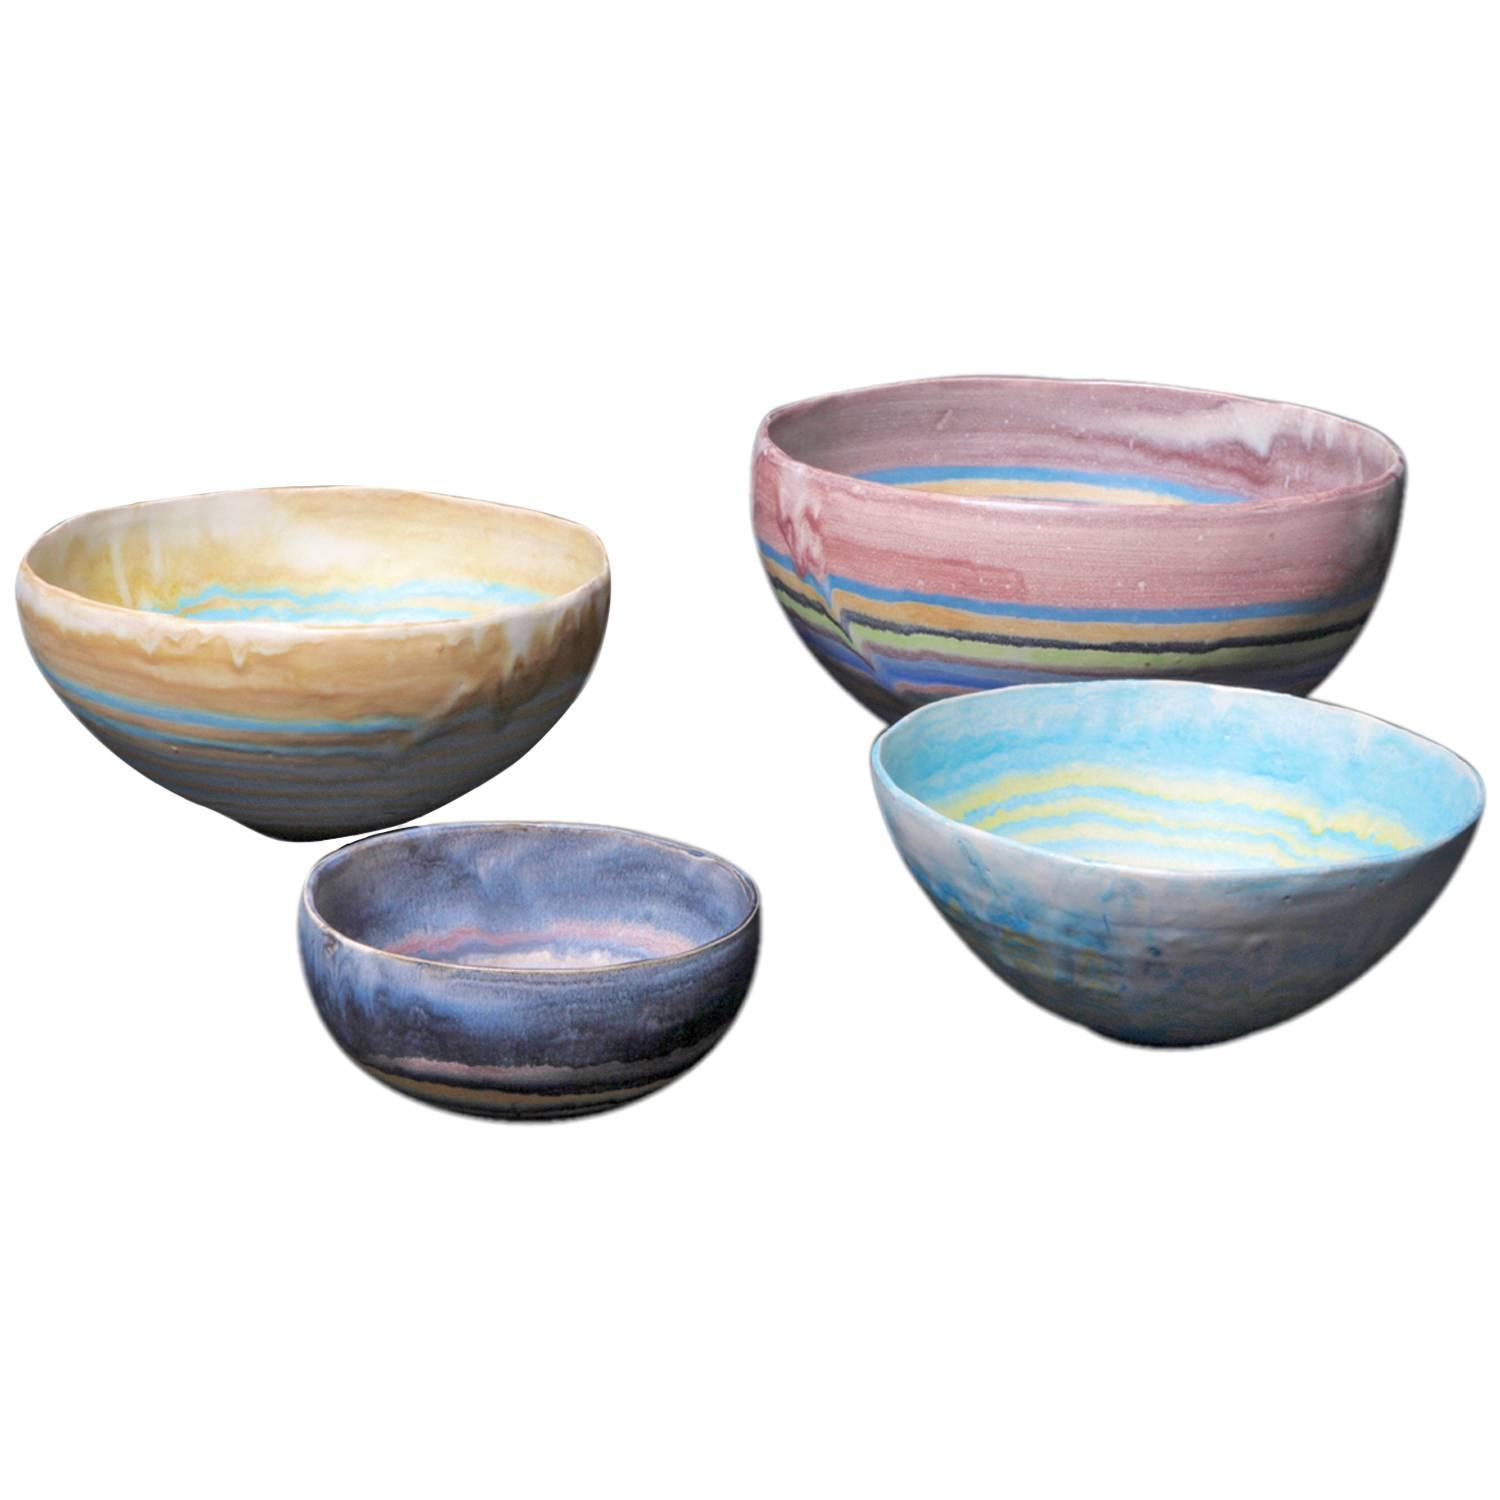 Set of Four Sound Bowls by Susanne Protzmann